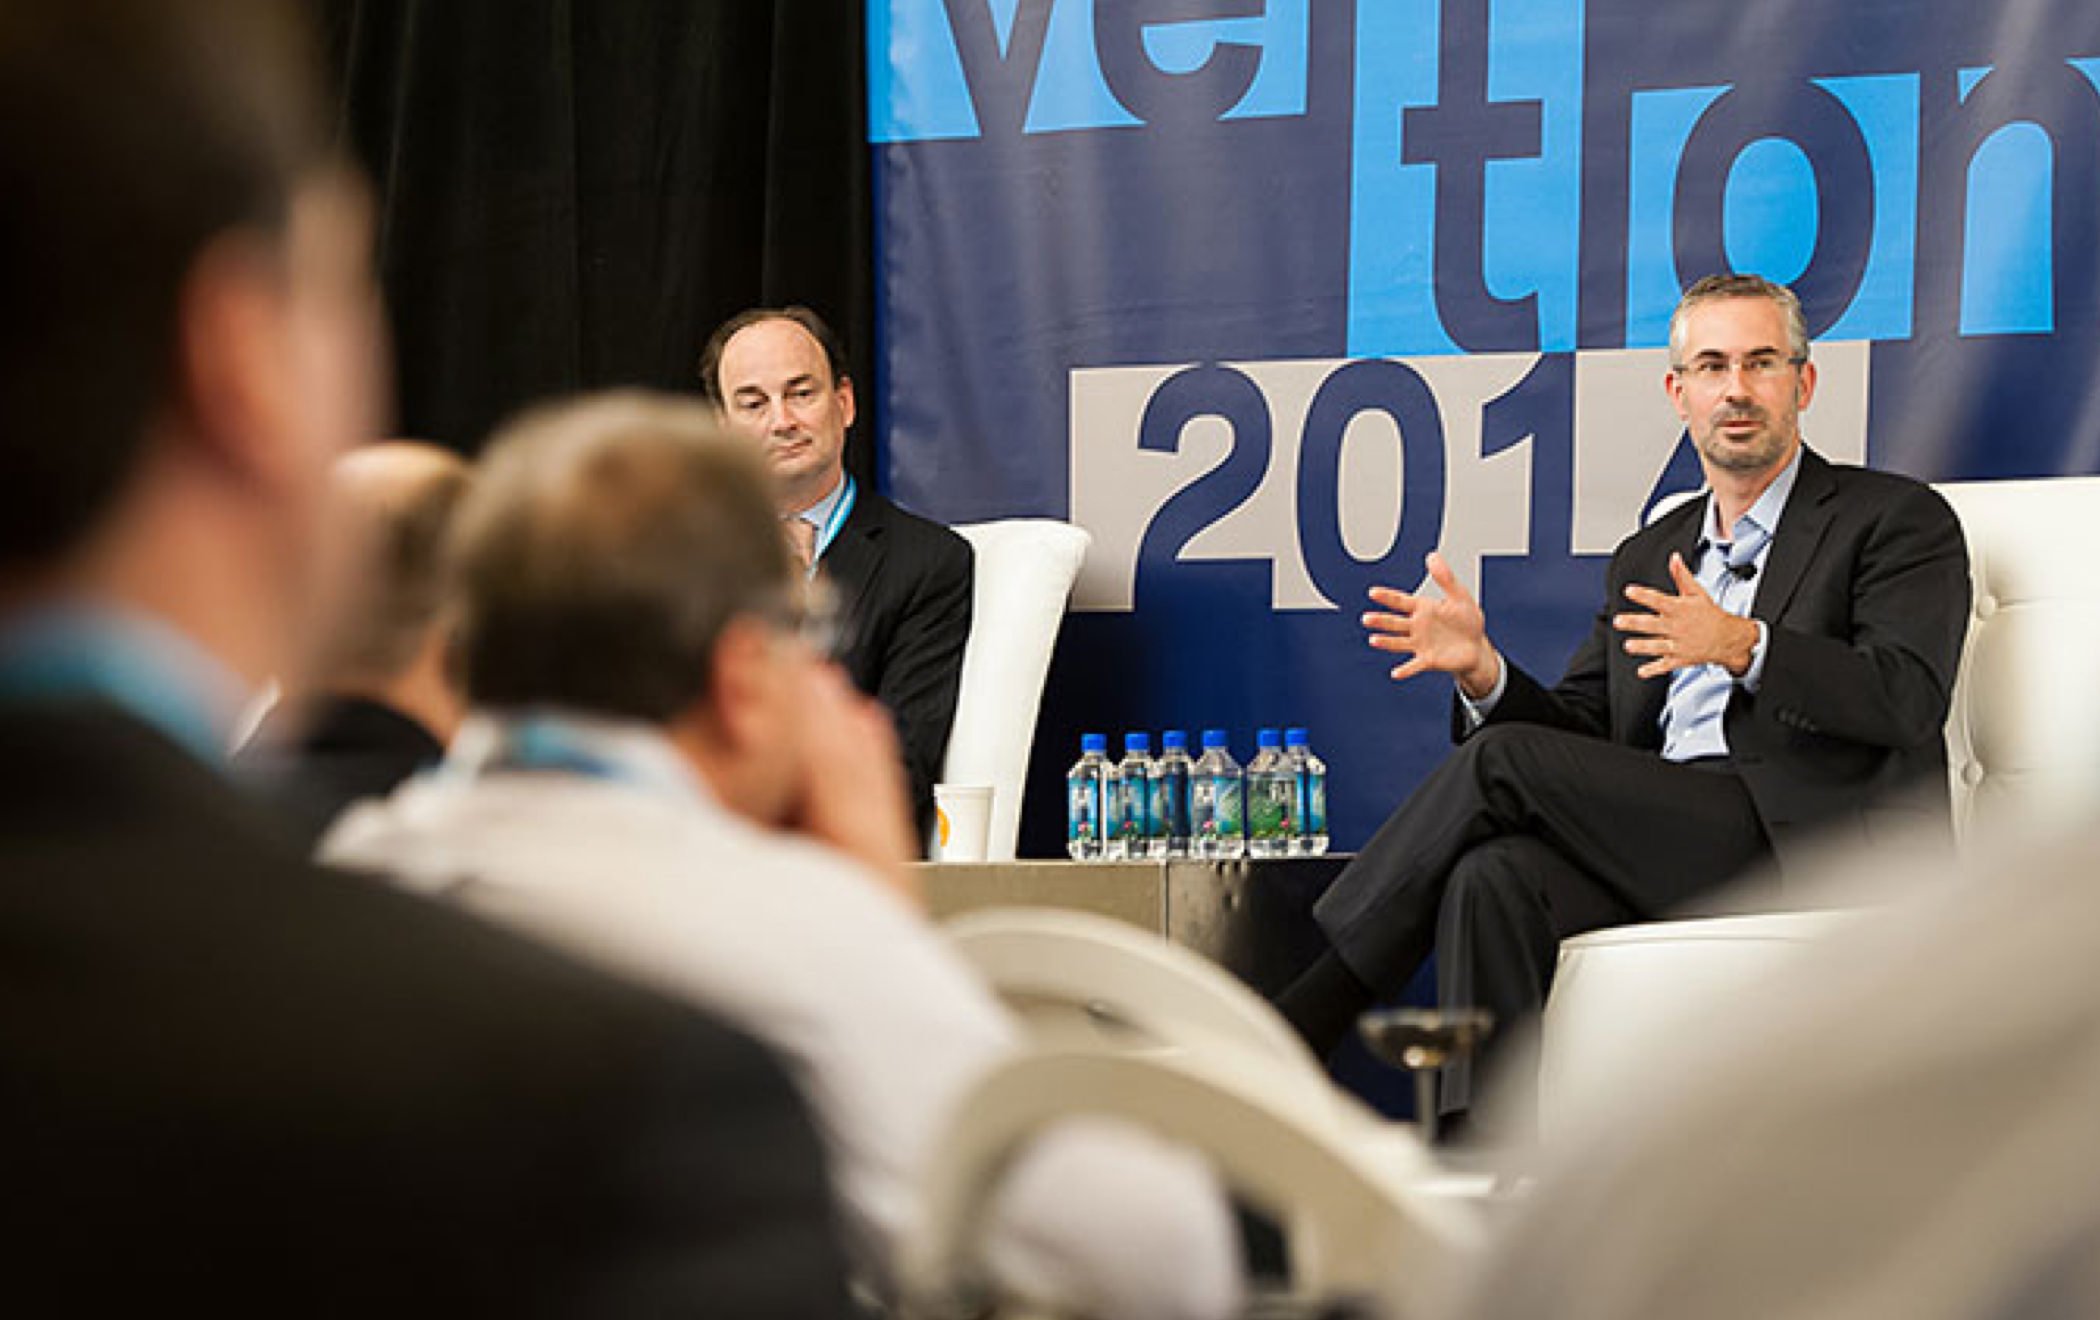 KCG CEO Daniel Coleman and Greg Tusar, head of global execution, lead a panel discussion at the 2014 KCG Uncon client event.